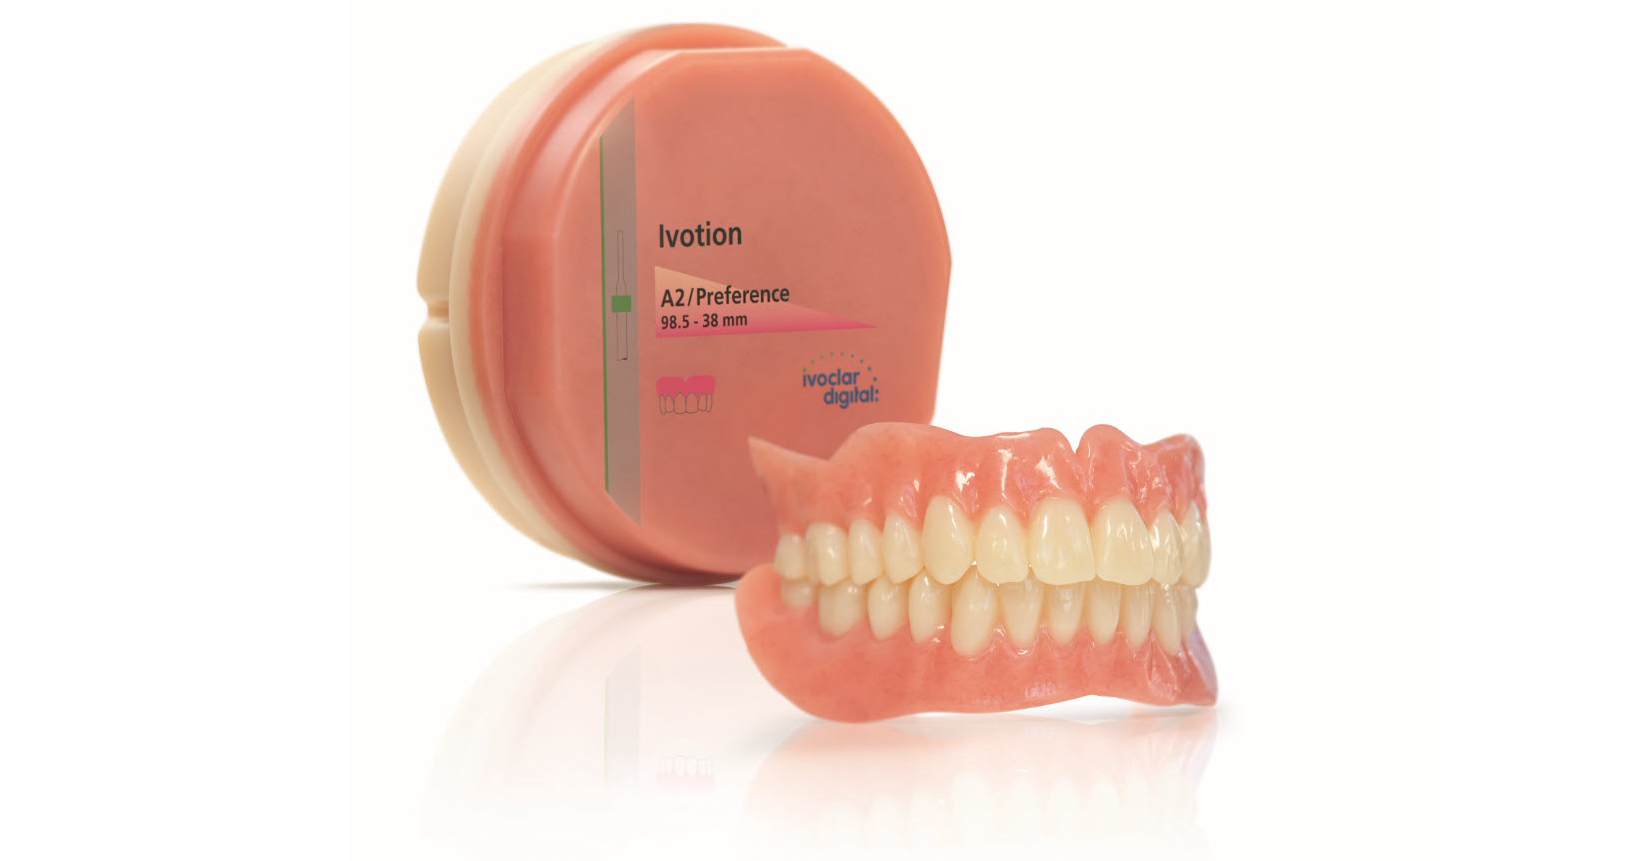 Digital Denture-Lösungen im Mittelpunkt des Interesses am Chicago Midwinter Meeting 2020